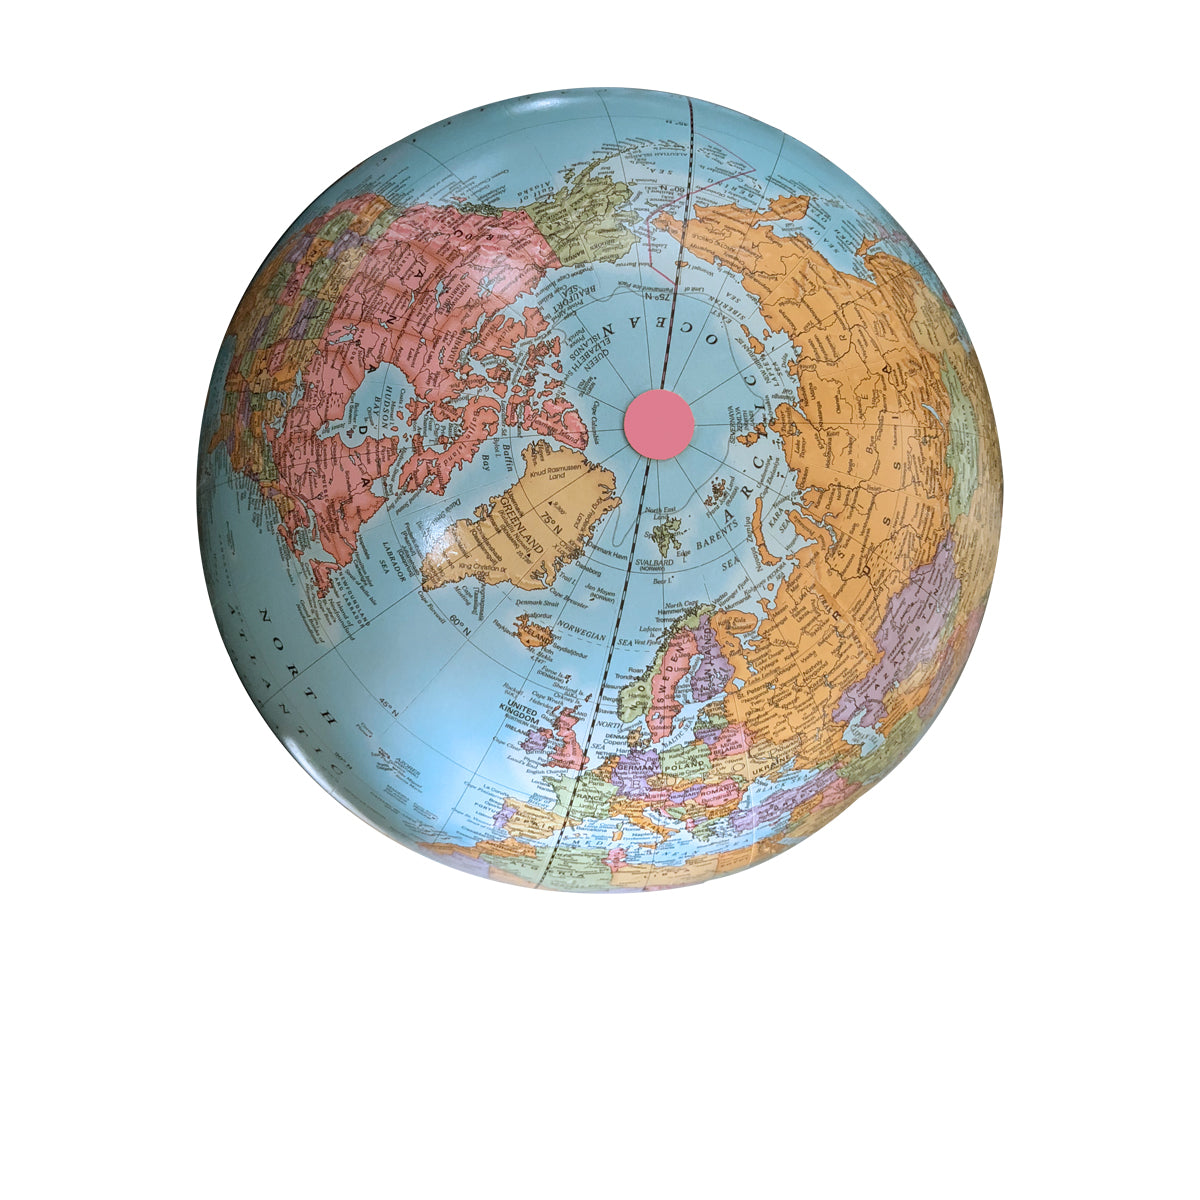 9 Inch Blue Classic Desk Globe with Handmade Pink Base